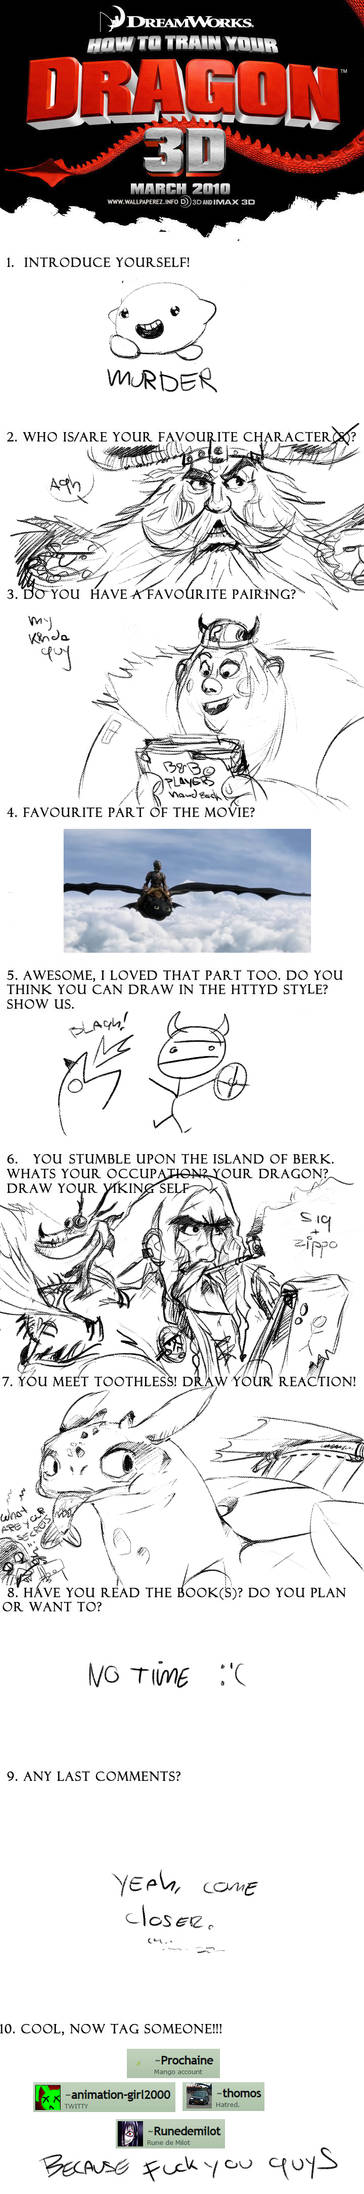 Meme: How to Train Your Dragon